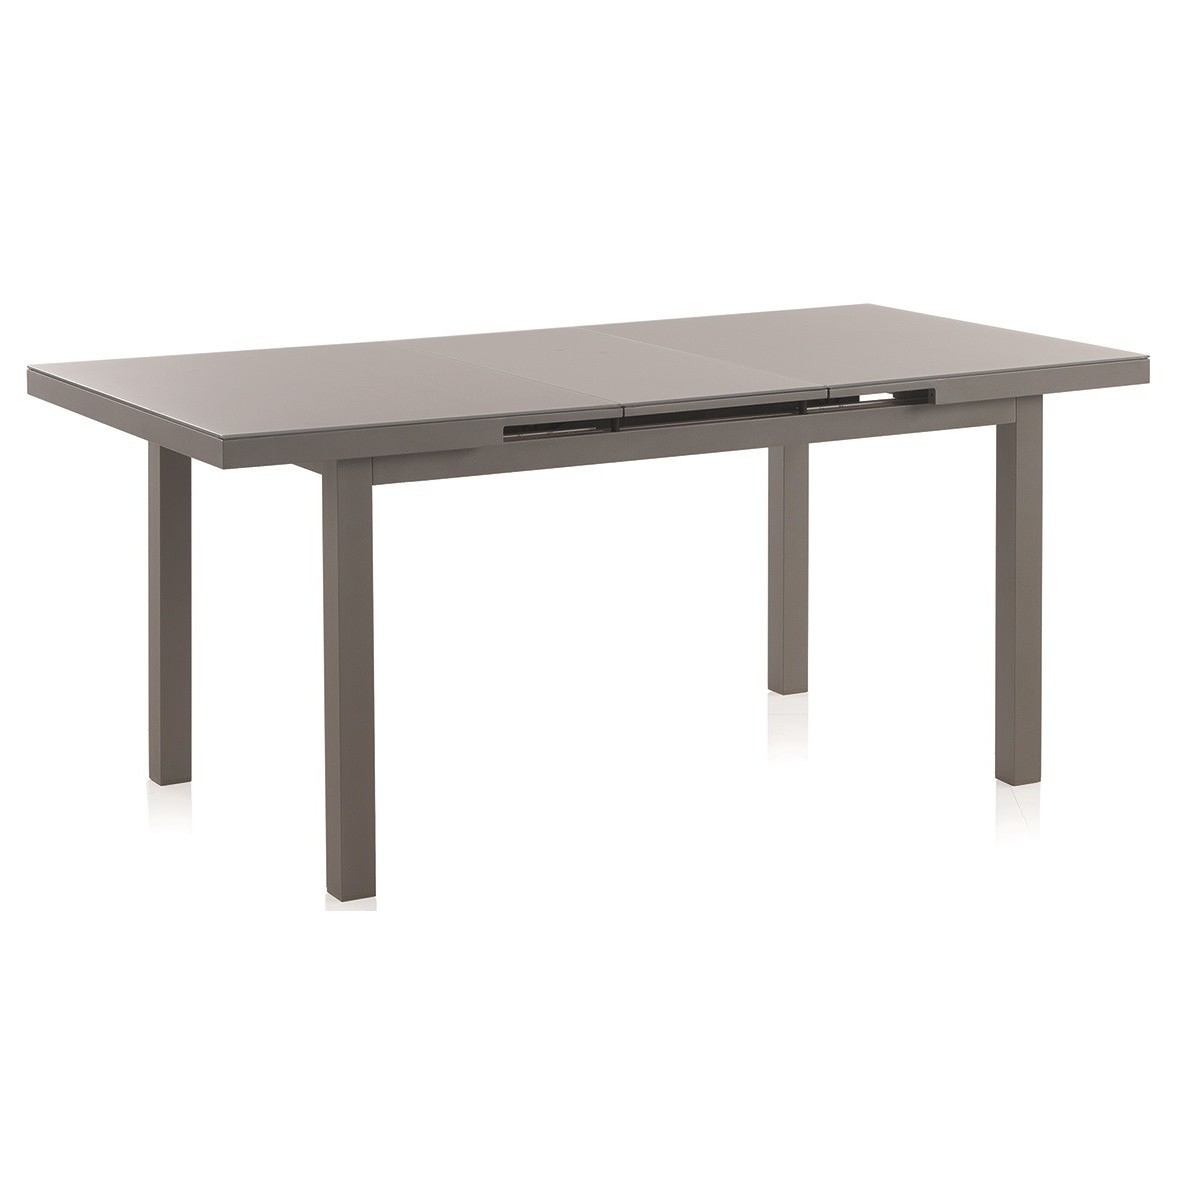 Table de repas en aluminium et verre sp cial ext rieur en for Table exterieur en aluminium